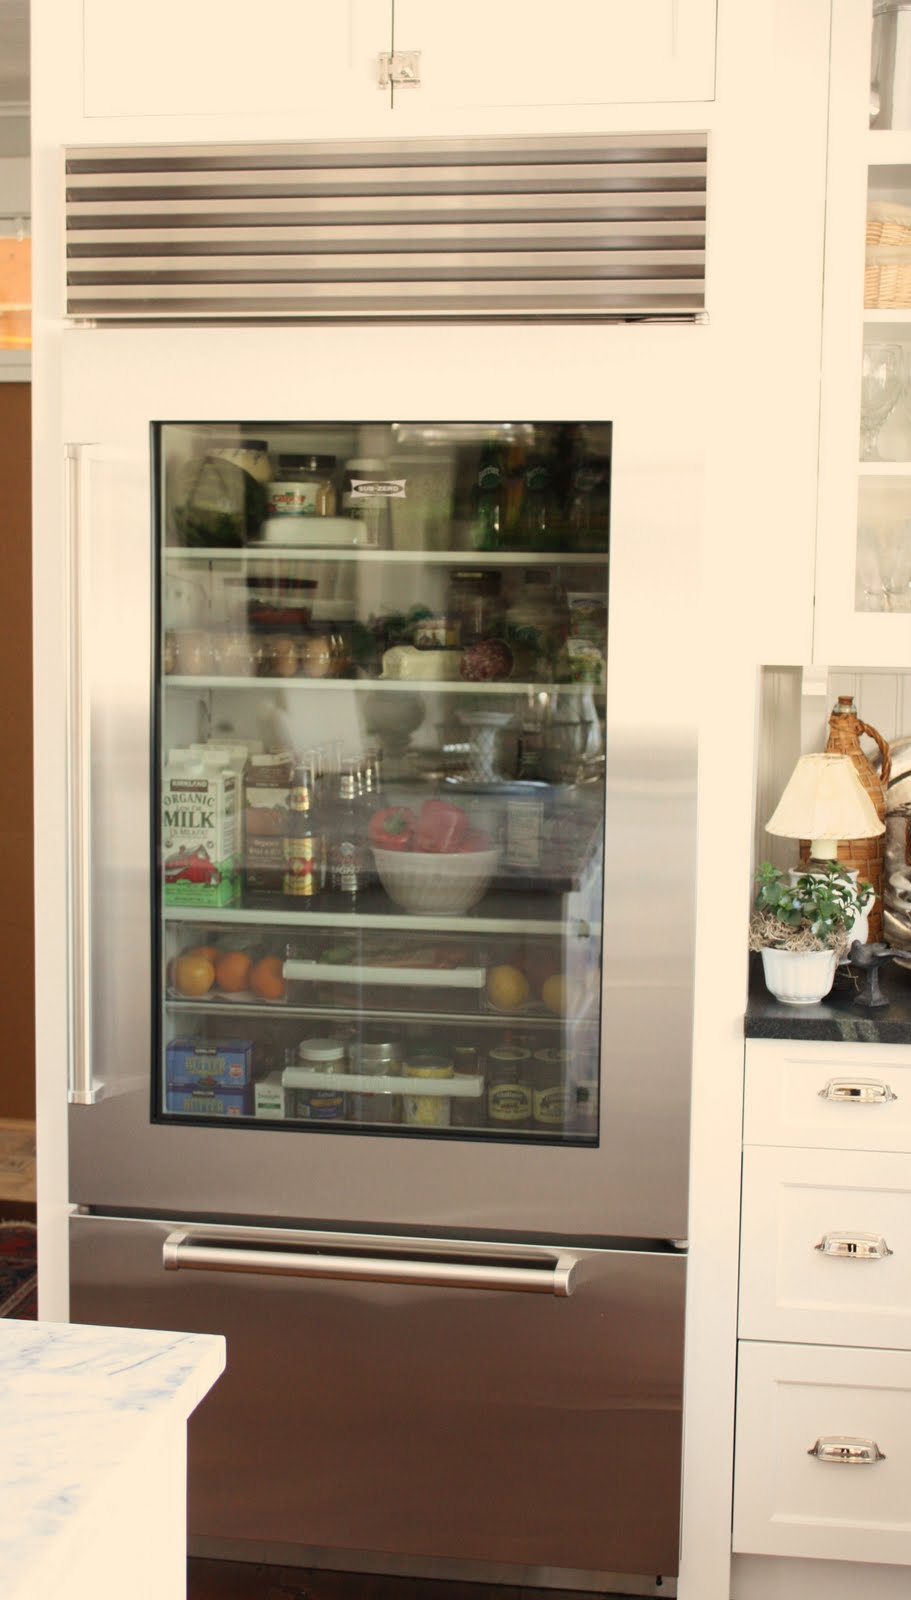 Glass door fridge kitchen - The Glass Door Refrigerator